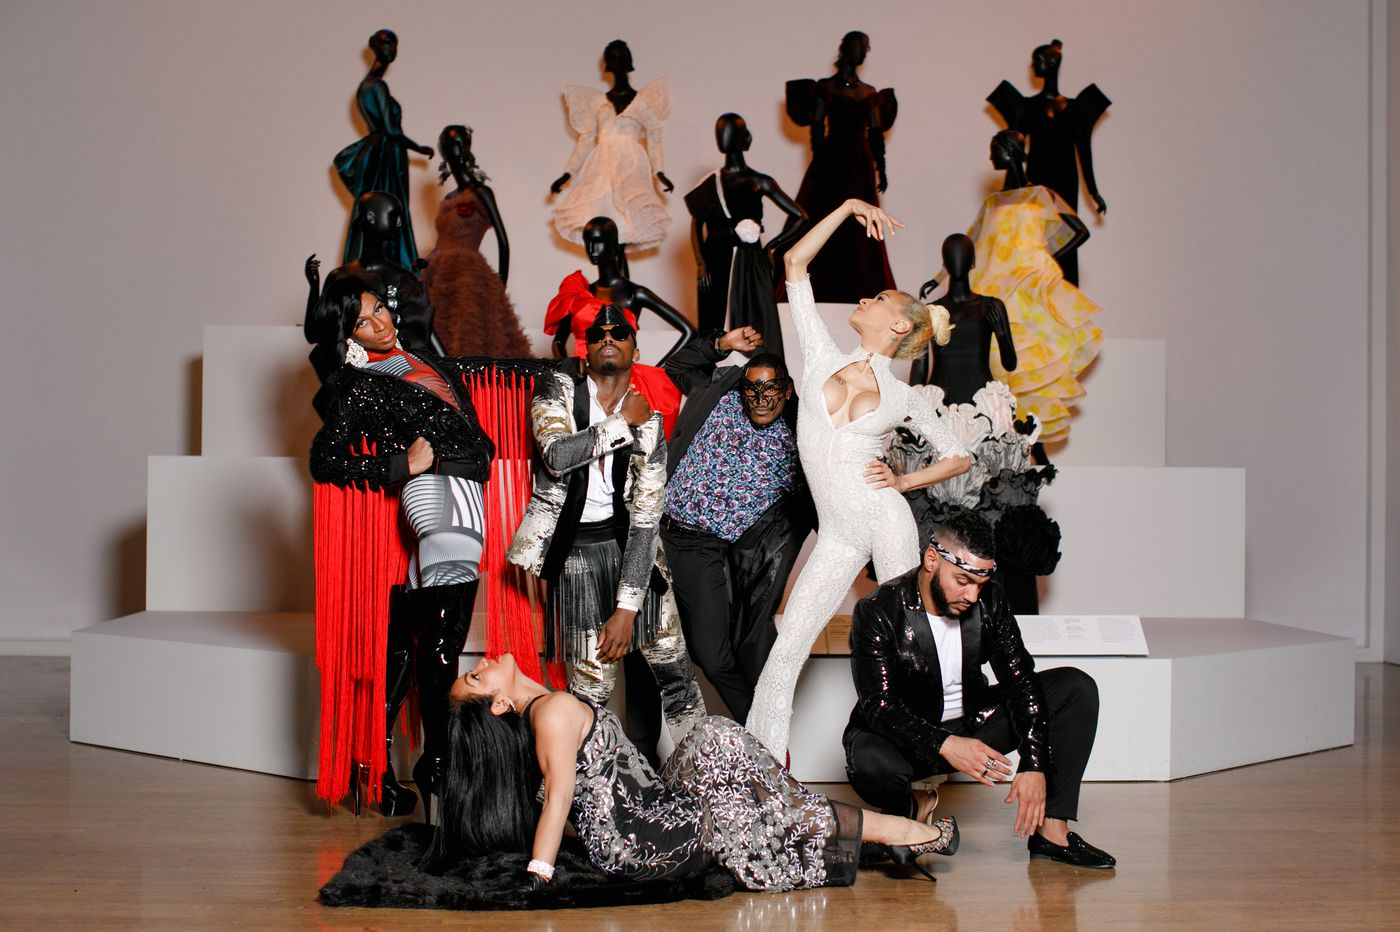 Far from black-tie, this Art Museum ball celebrates LGBTQ ballroom culture